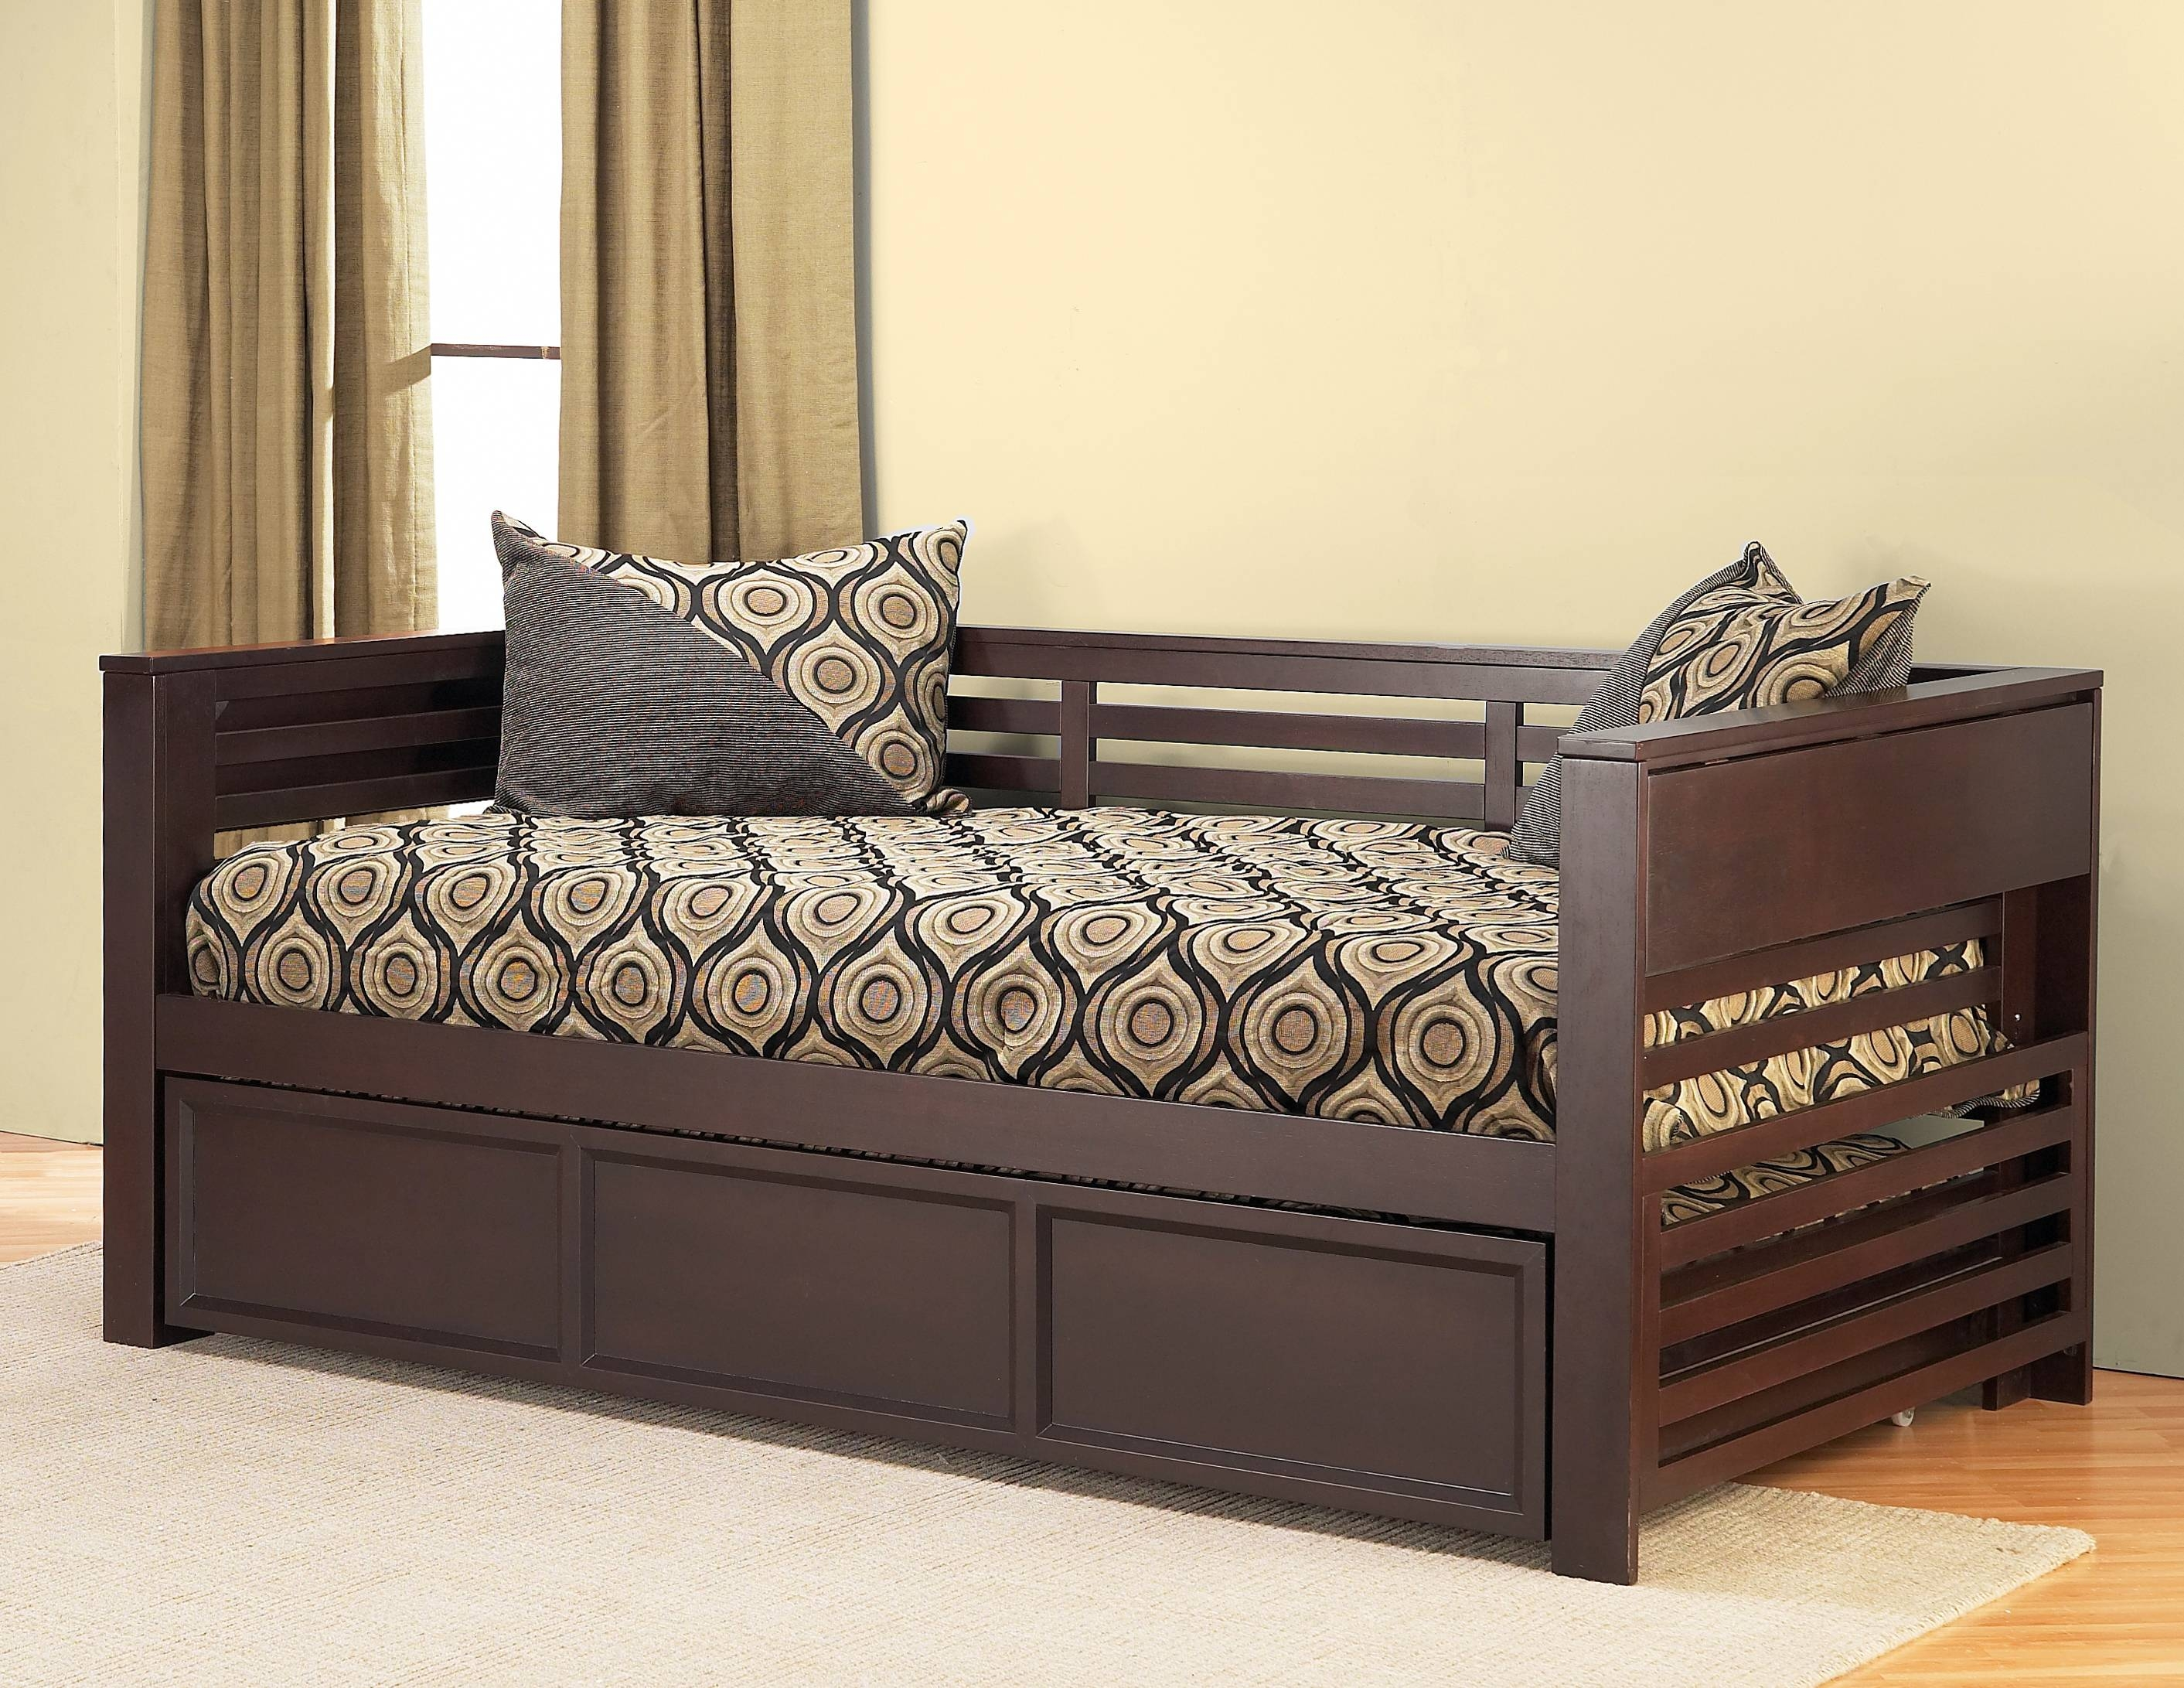 Adult Daybeds For Sofa Day Beds (View 2 of 30)